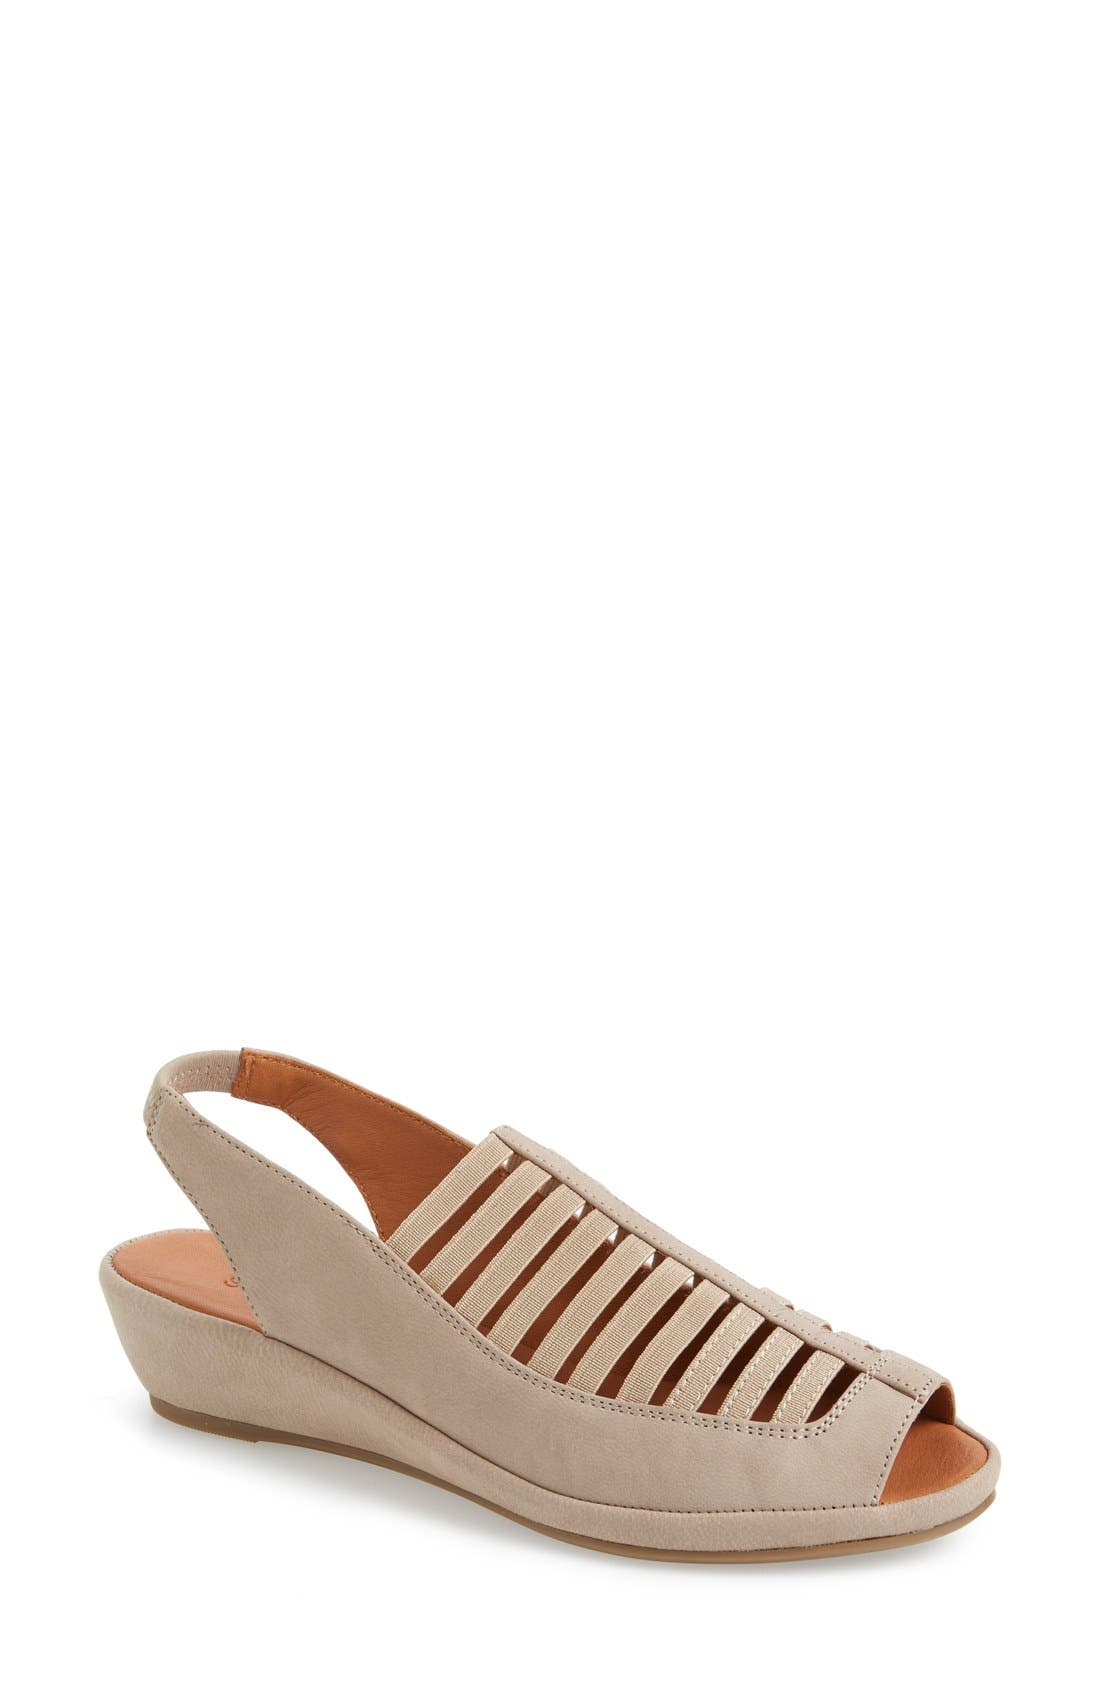 by Kenneth Cole 'Lee' Sandal,                             Main thumbnail 4, color,